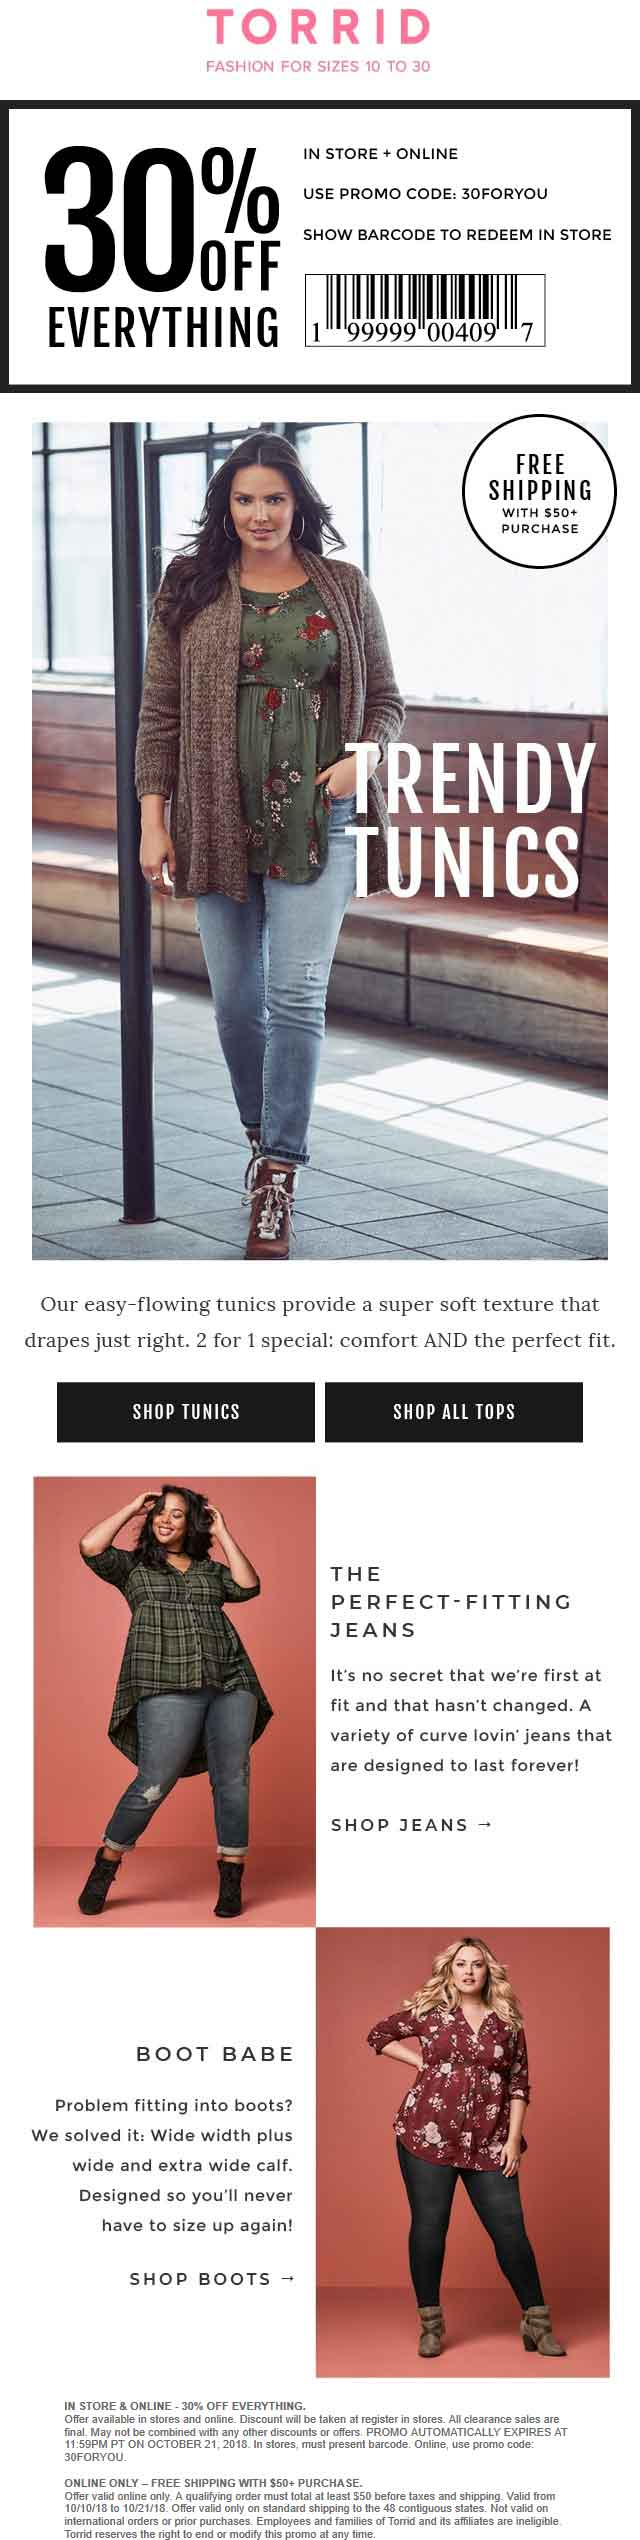 Torrid Coupon February 2020 30% off everything at Torrid, or online via promo code 30FORYOU